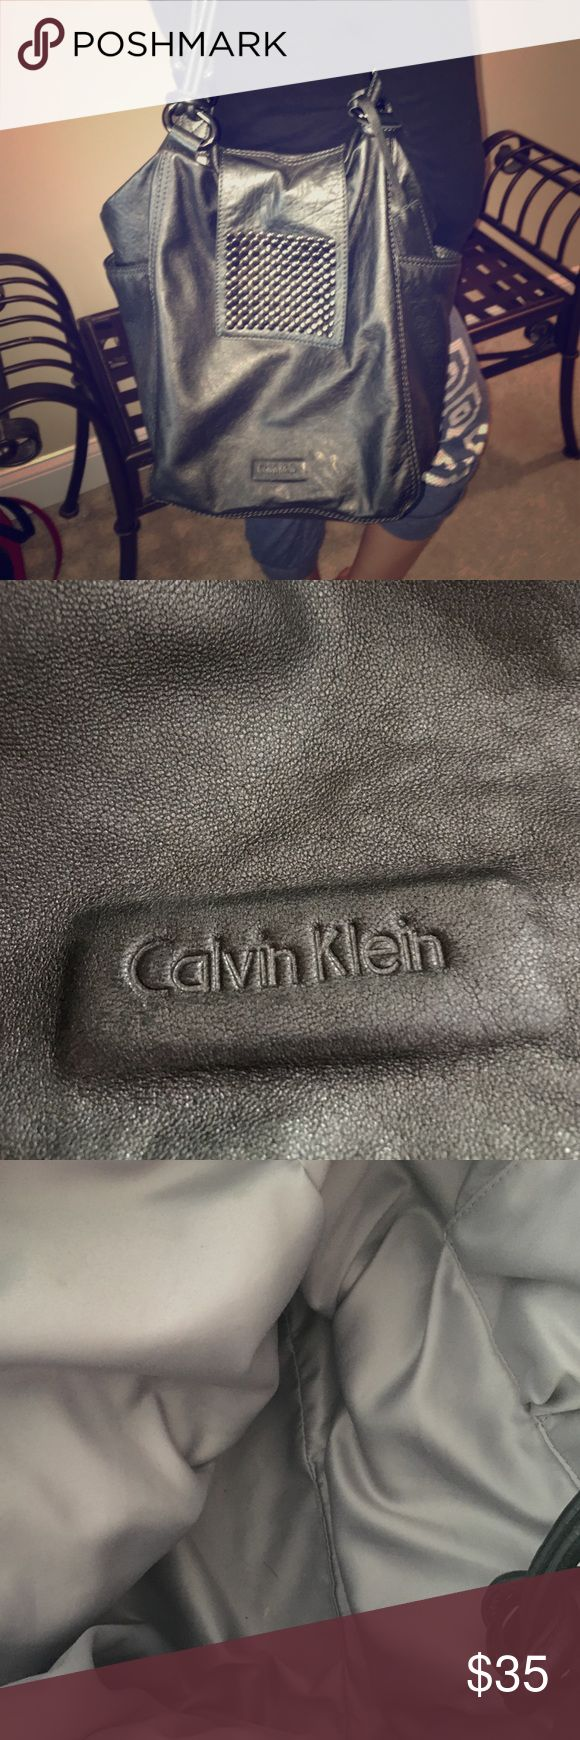 Platinum Calvin Klein Bag with Studs. Large Large bag. (Not quite as big as picture makes it look). Has side pockets and is extremely soft with lots of give. A couple of small spots on bottom. Priced accordingly. Calvin Klein Bags Hobos